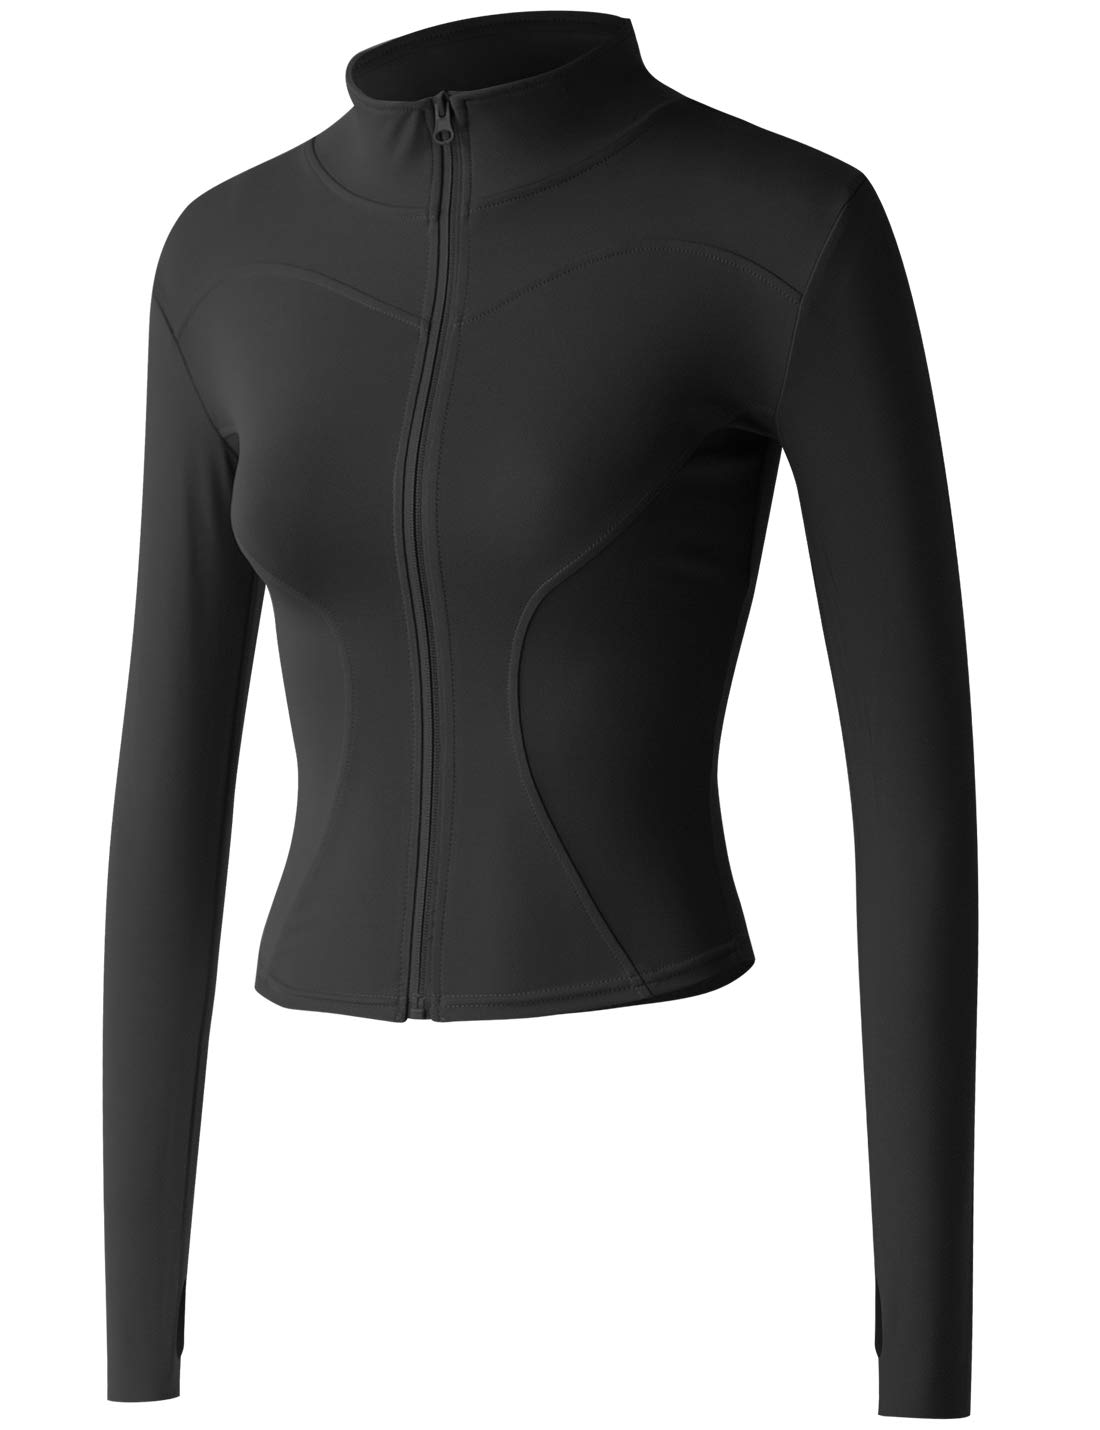 Gacaky Women's Slim Fit Lightweight Athletic Full Zip Stretchy Workout Running Track Jacket with Thumb Holes